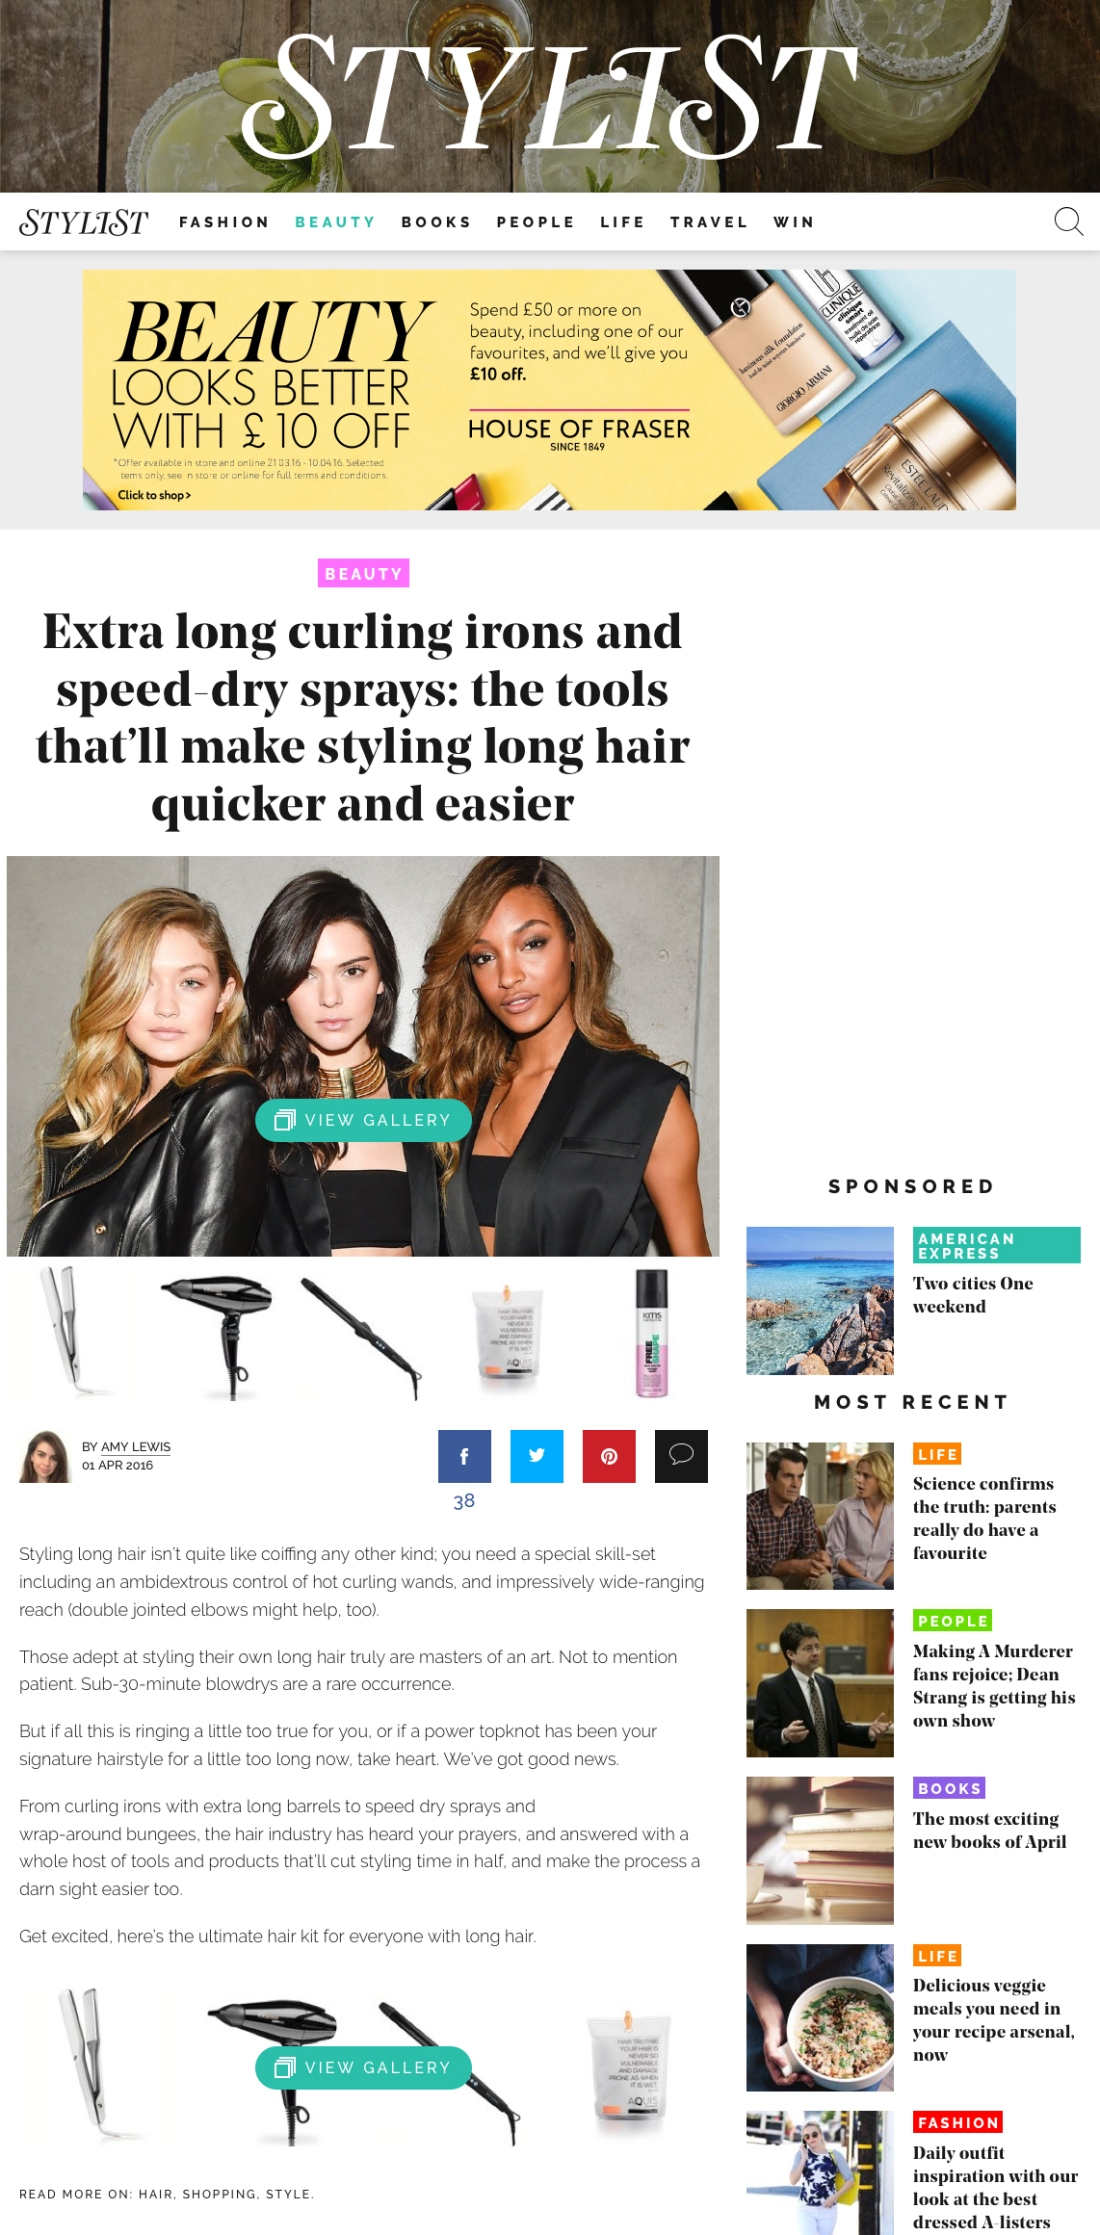 Extra_long_curling_irons_and_speed-dry_sprays_the_tools_that'll_make_styling_long_hair_quicker_and_easier_Stylist_Magazine_-_2016-04-03_15.00.32 copy